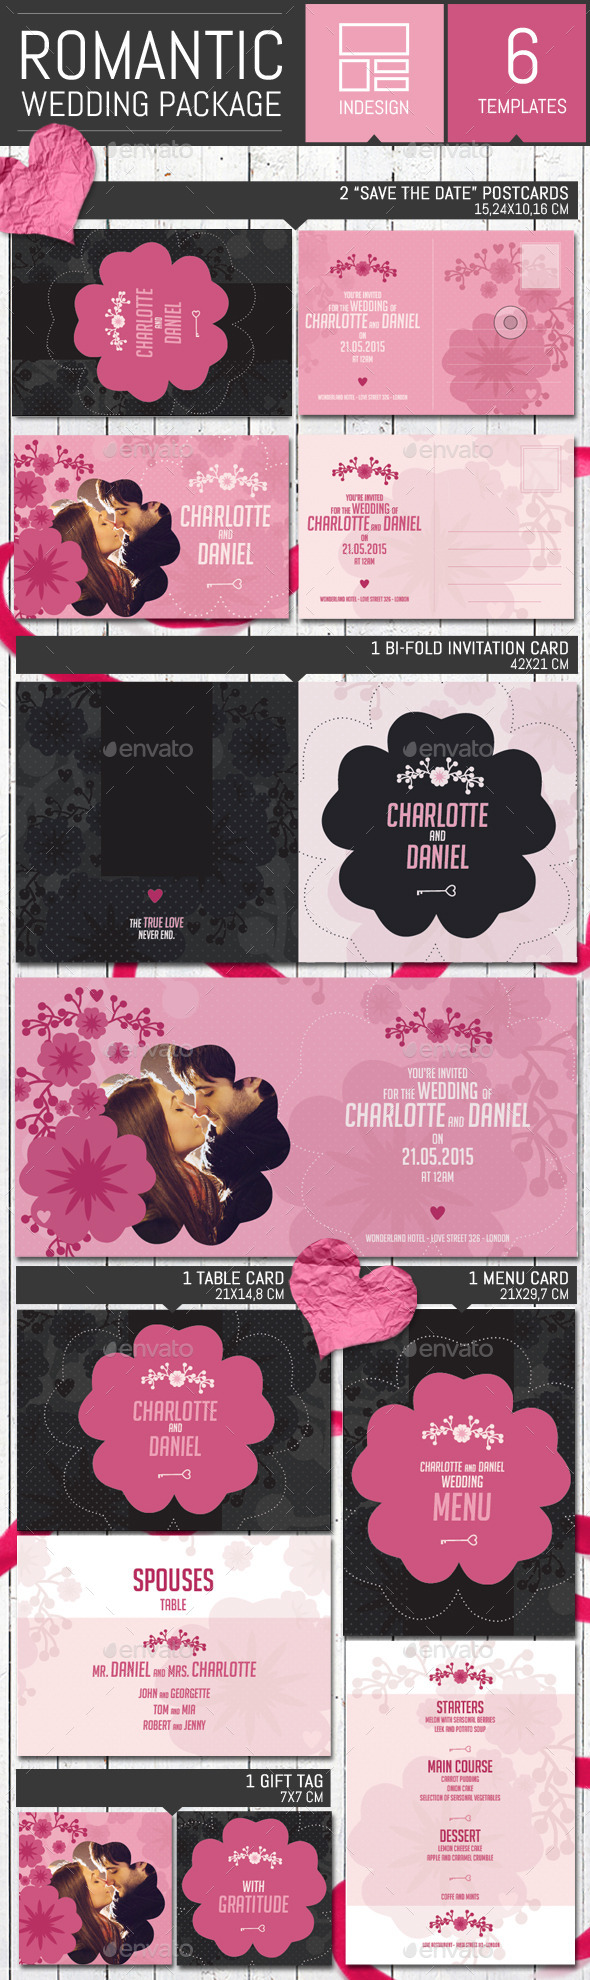 Romantic Wedding Invitation Pack Template